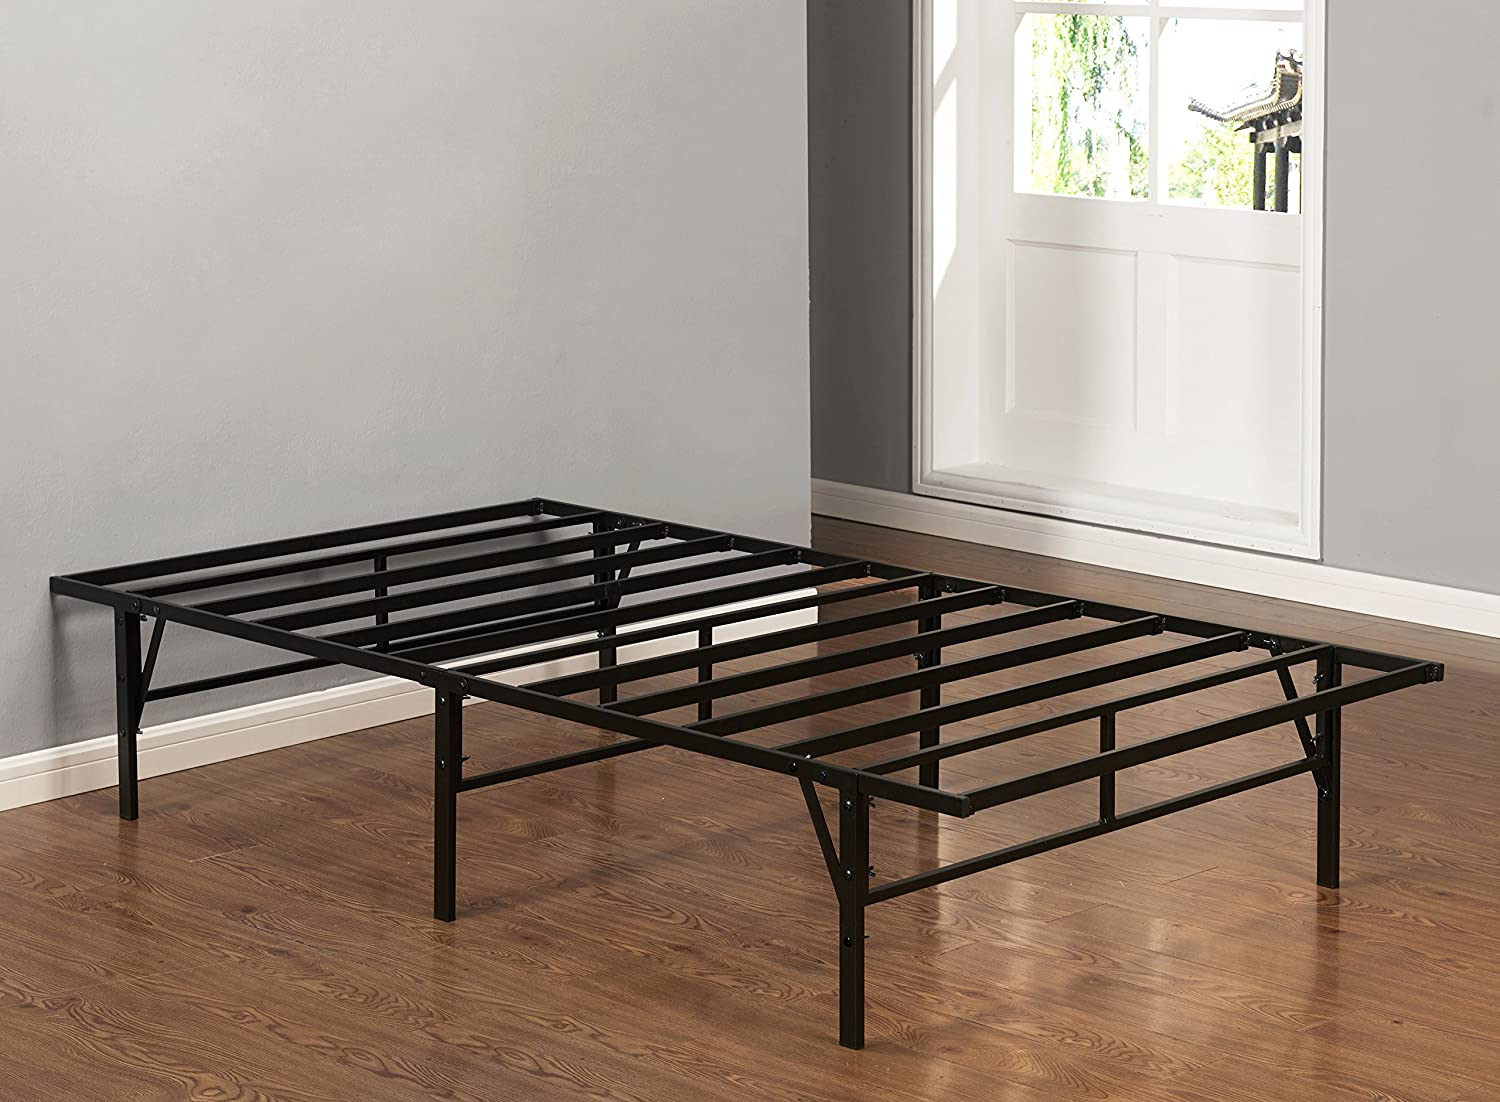 Kings Brand Furniture Platform Bed Frame Mattress Foundation Box Spring Replacement, Twin